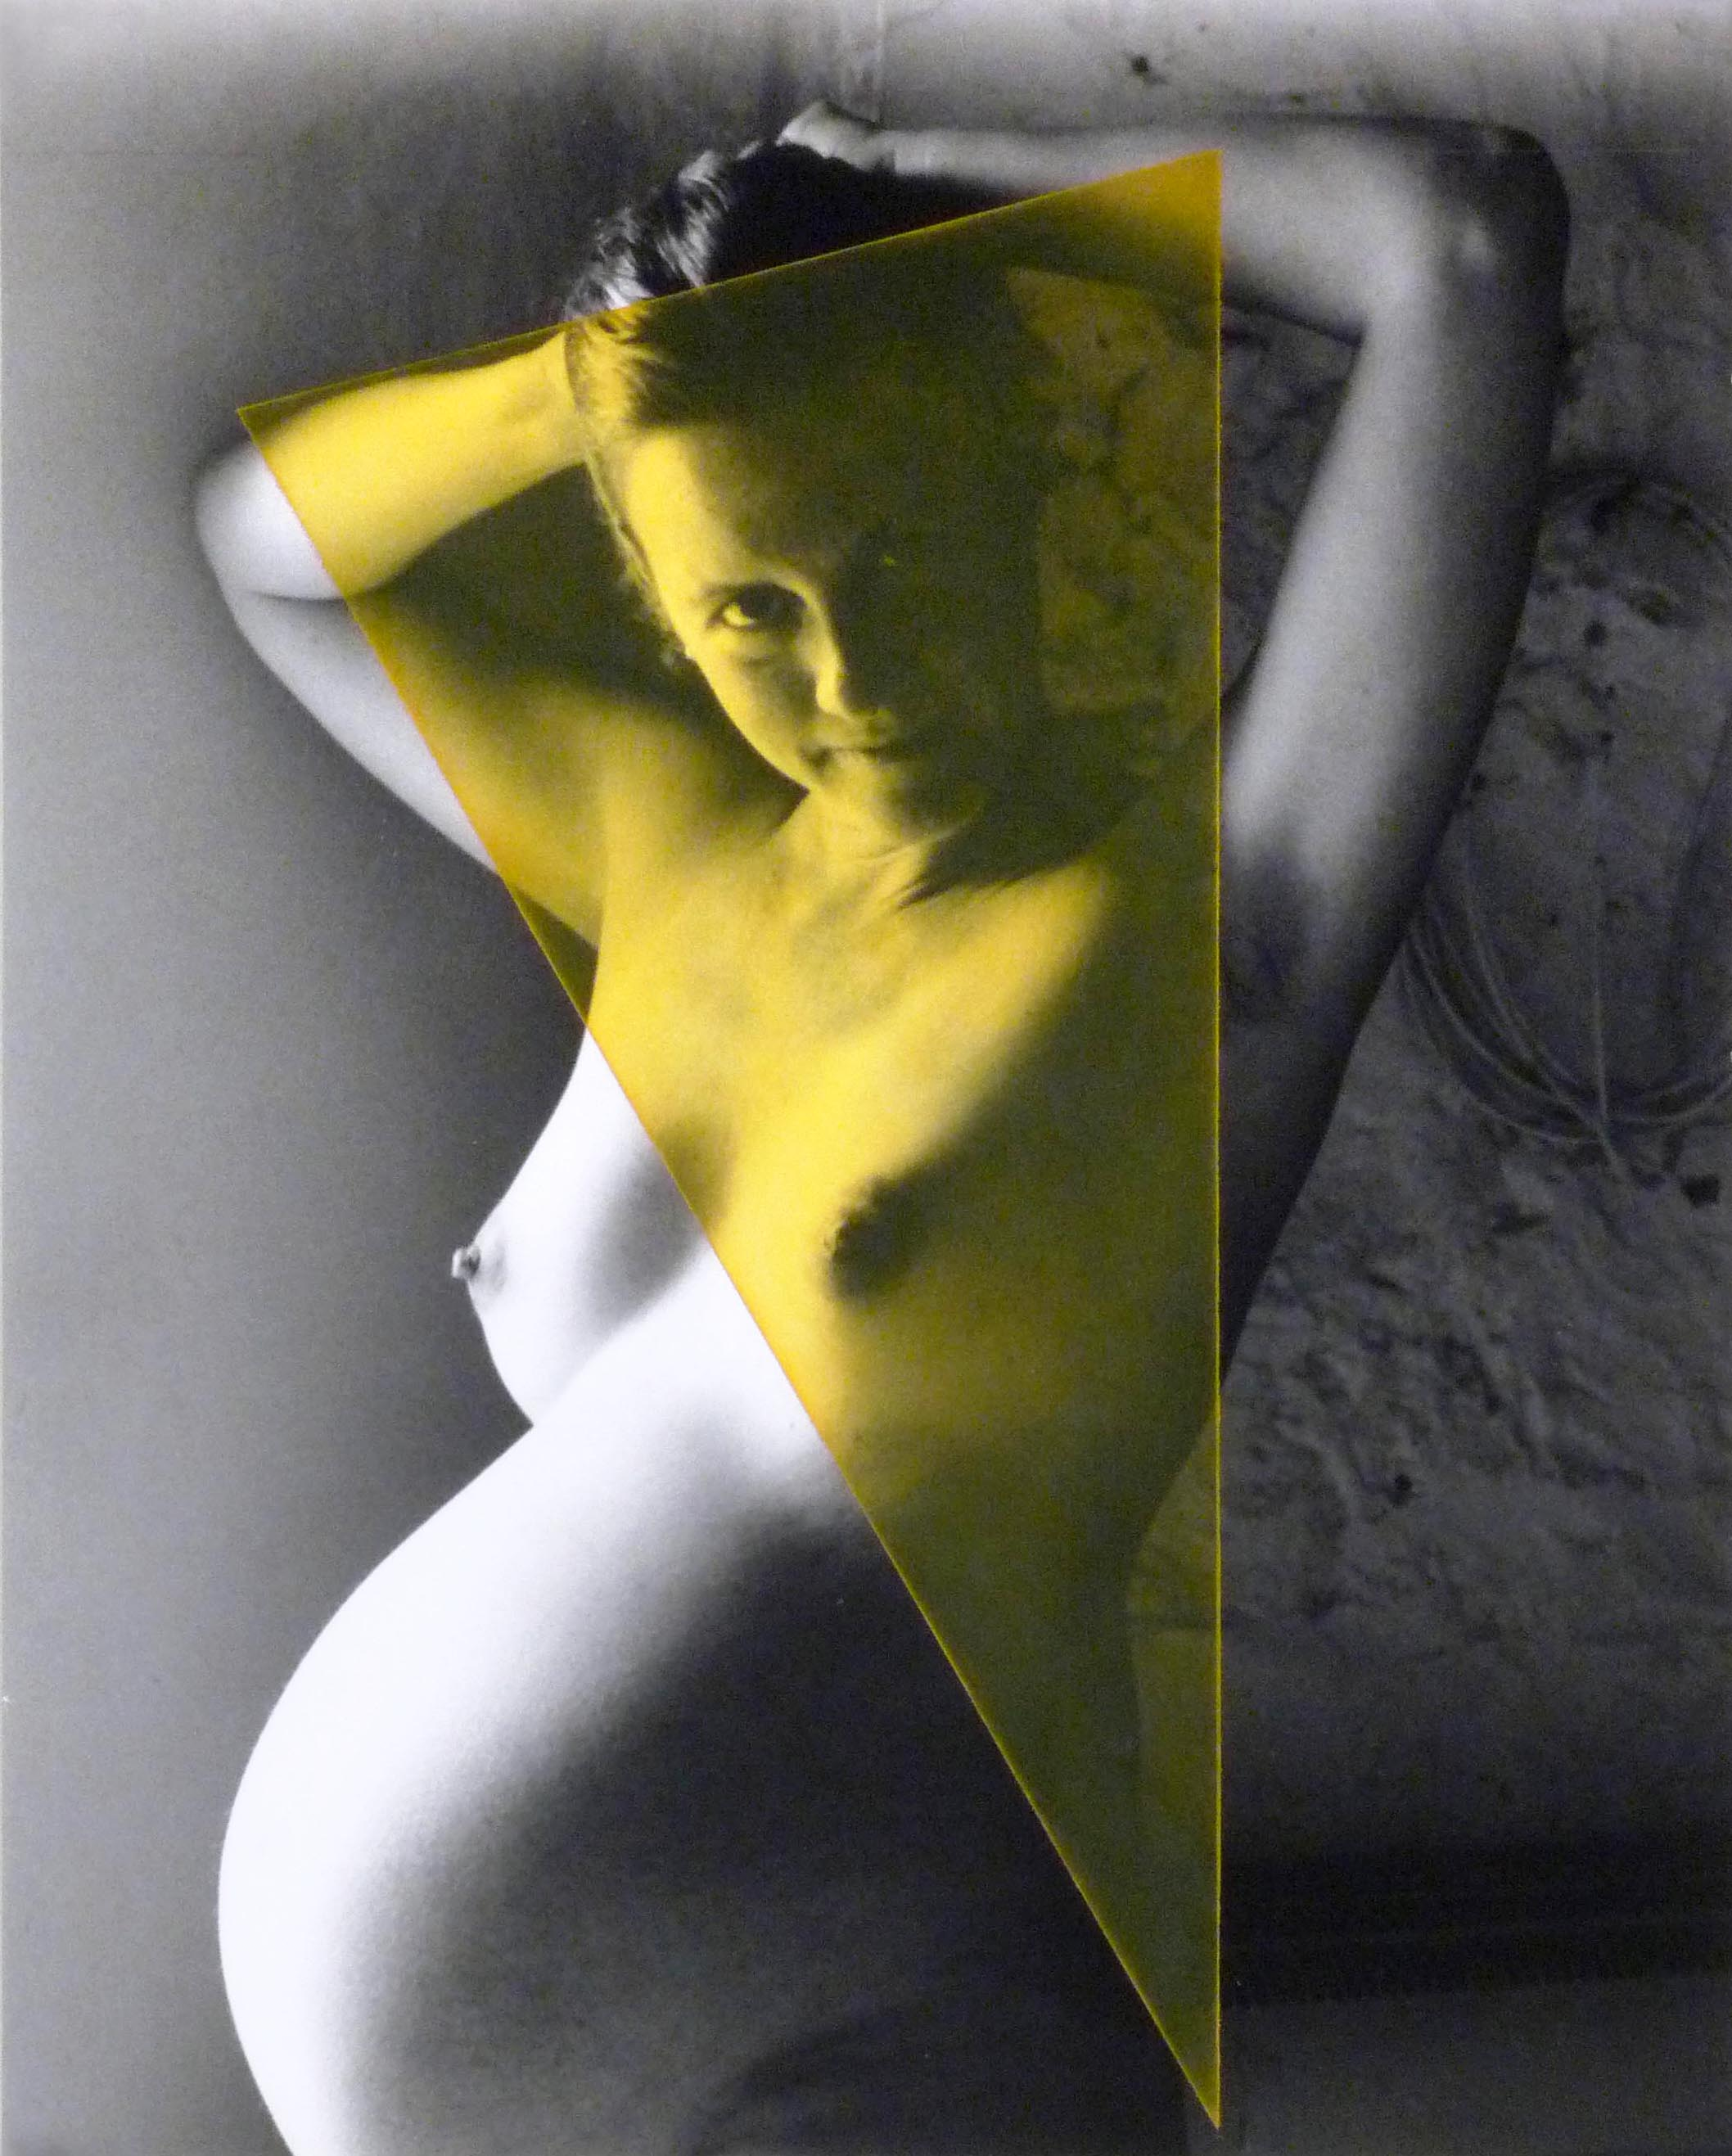 La Pietra Madonna  2007  oil paint on gelatin silver print  15 x 20 inches